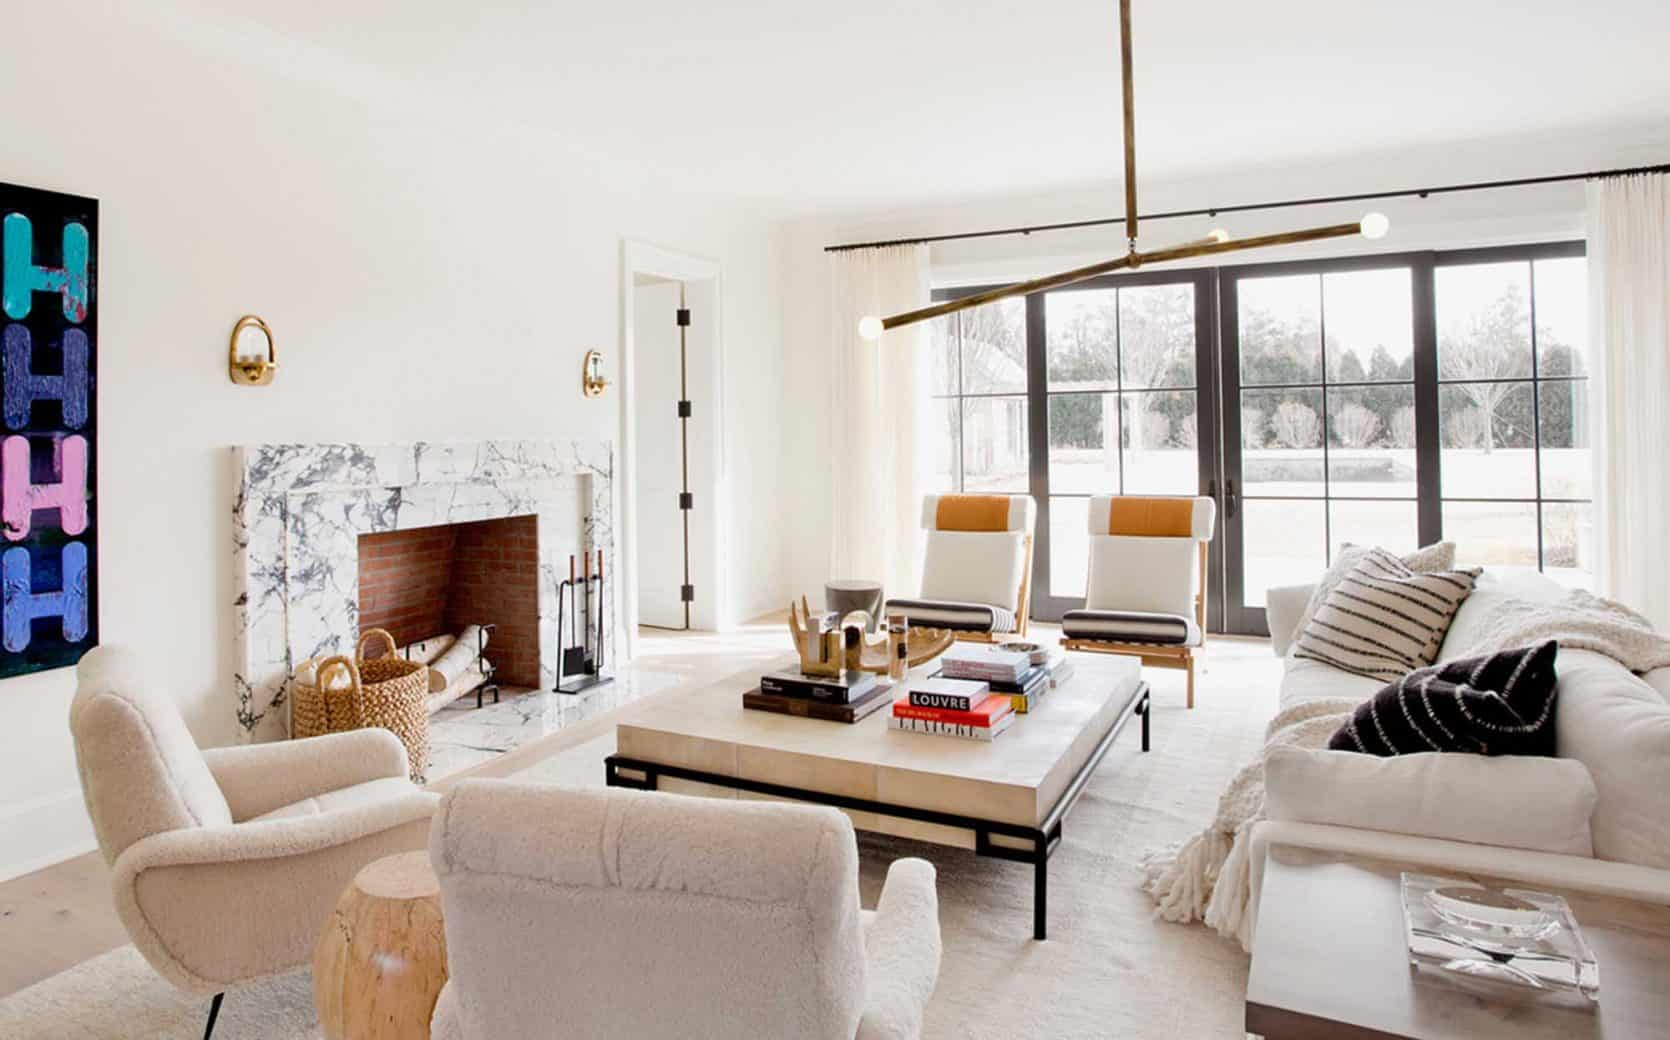 12 Key Things to Remember When Decorating With Neutrals